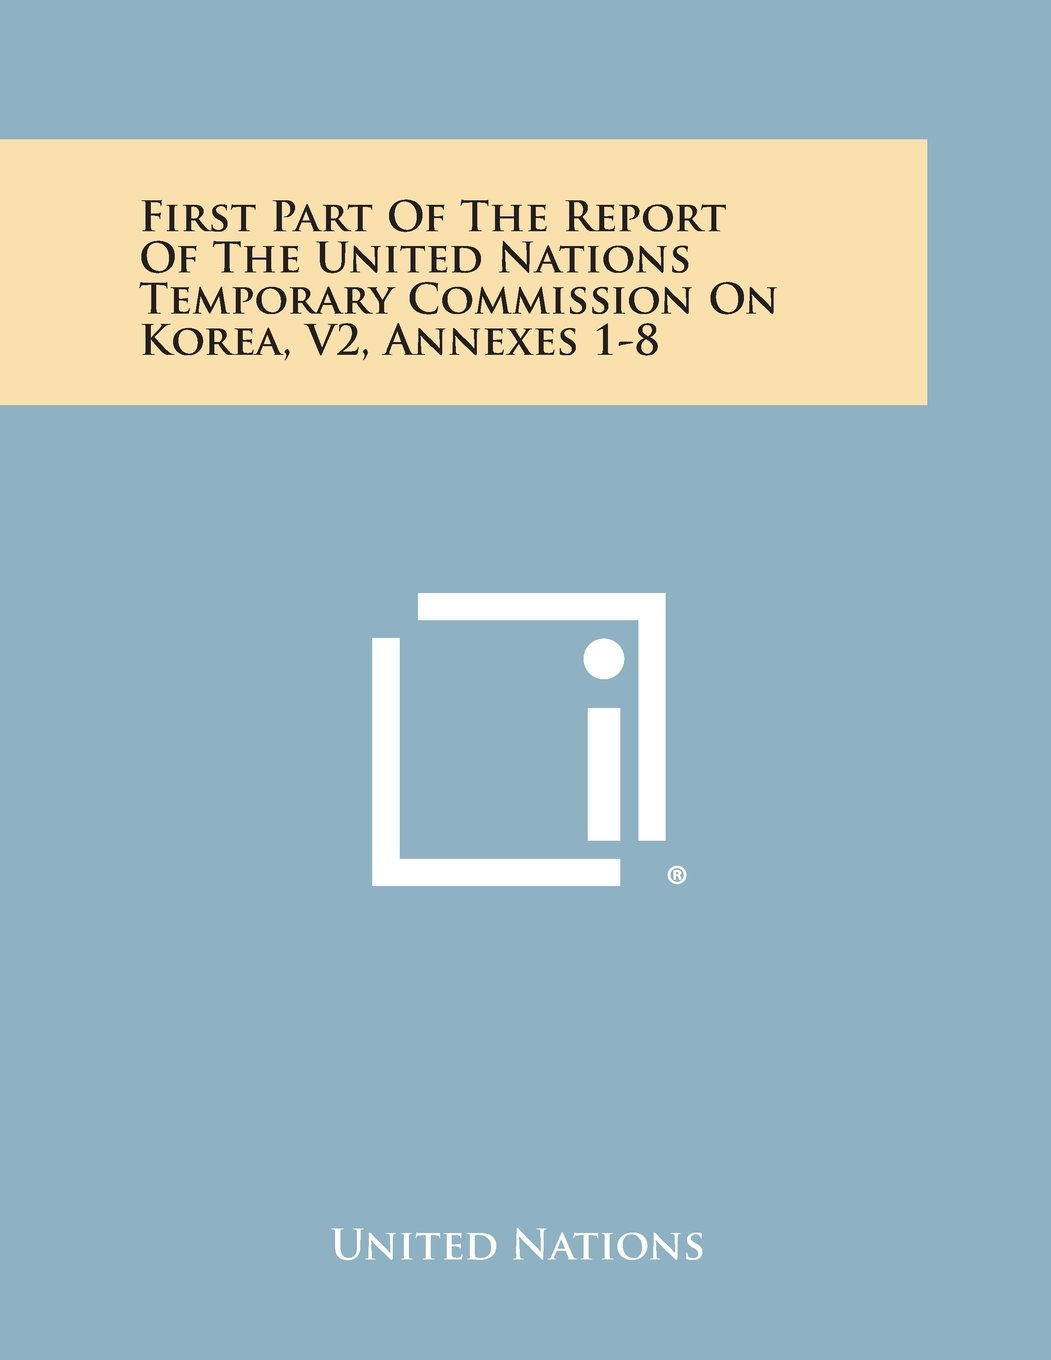 First Part of the Report of the United Nations Temporary Commission on Korea, V2, Annexes 1-8 PDF